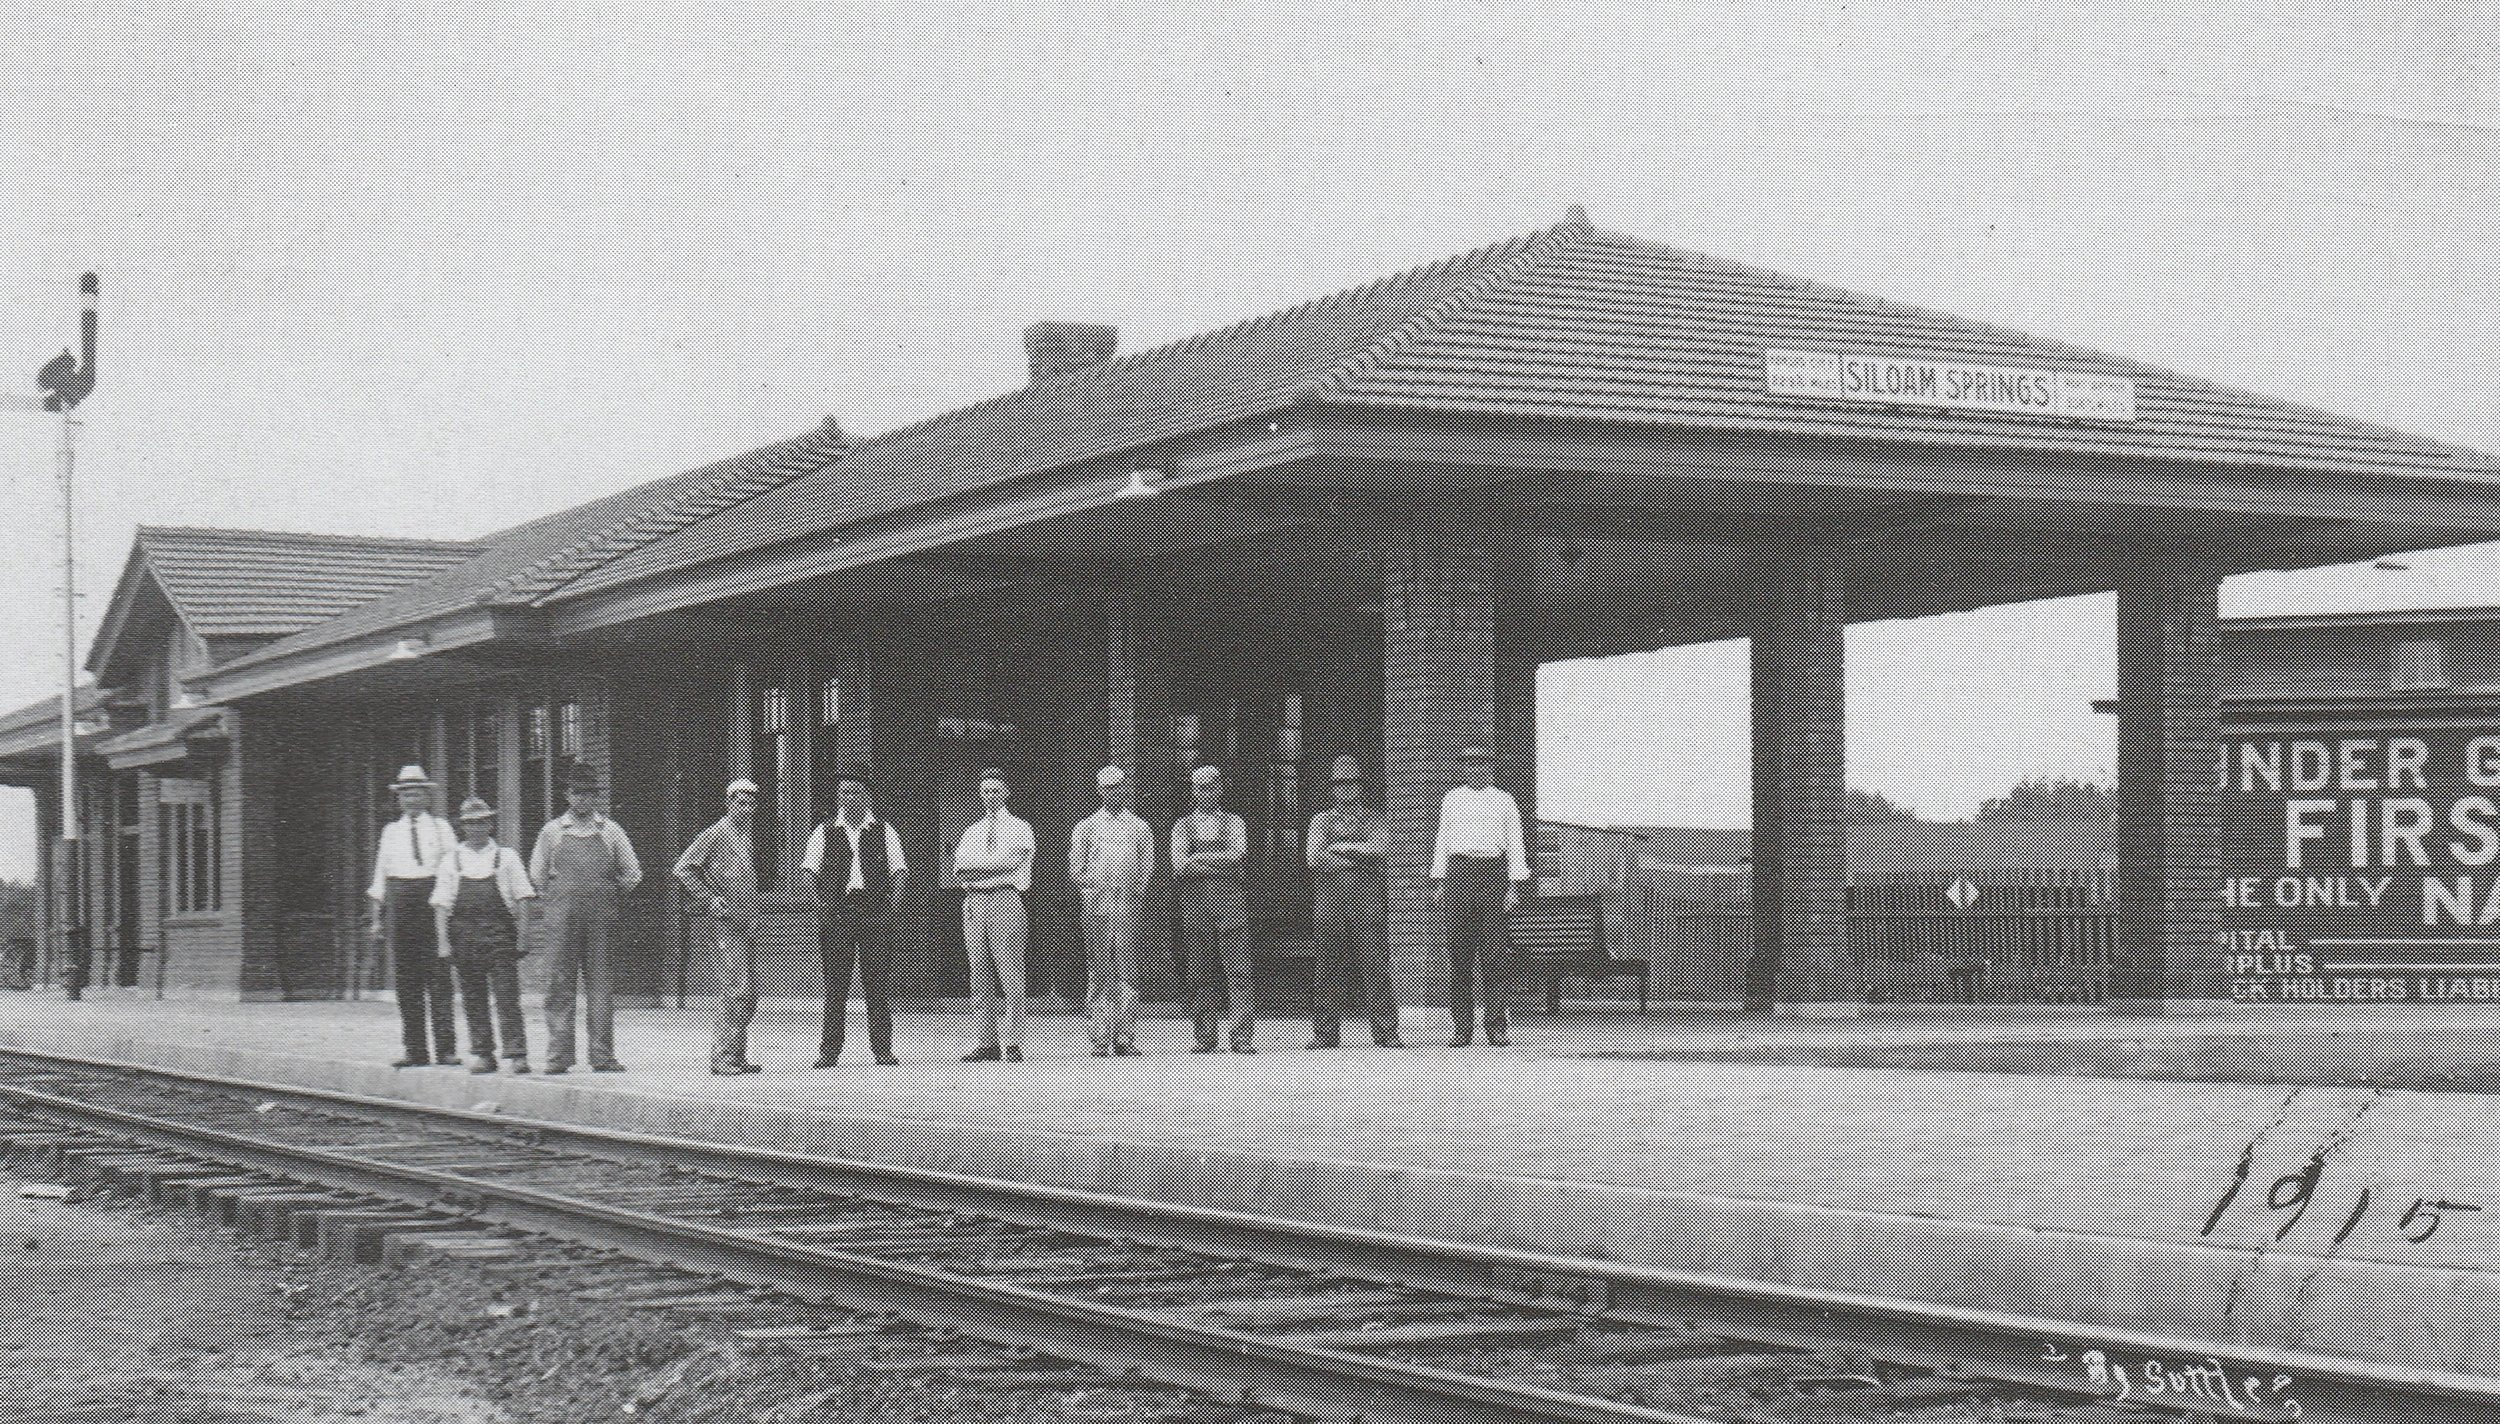 Siloam's second passenger depot was built in 1915 on the location of its first depot. The first depot was moved to another location and used for freight only. Photo from  Images of America: Siloam Springs  by Don Warden, used with permission.